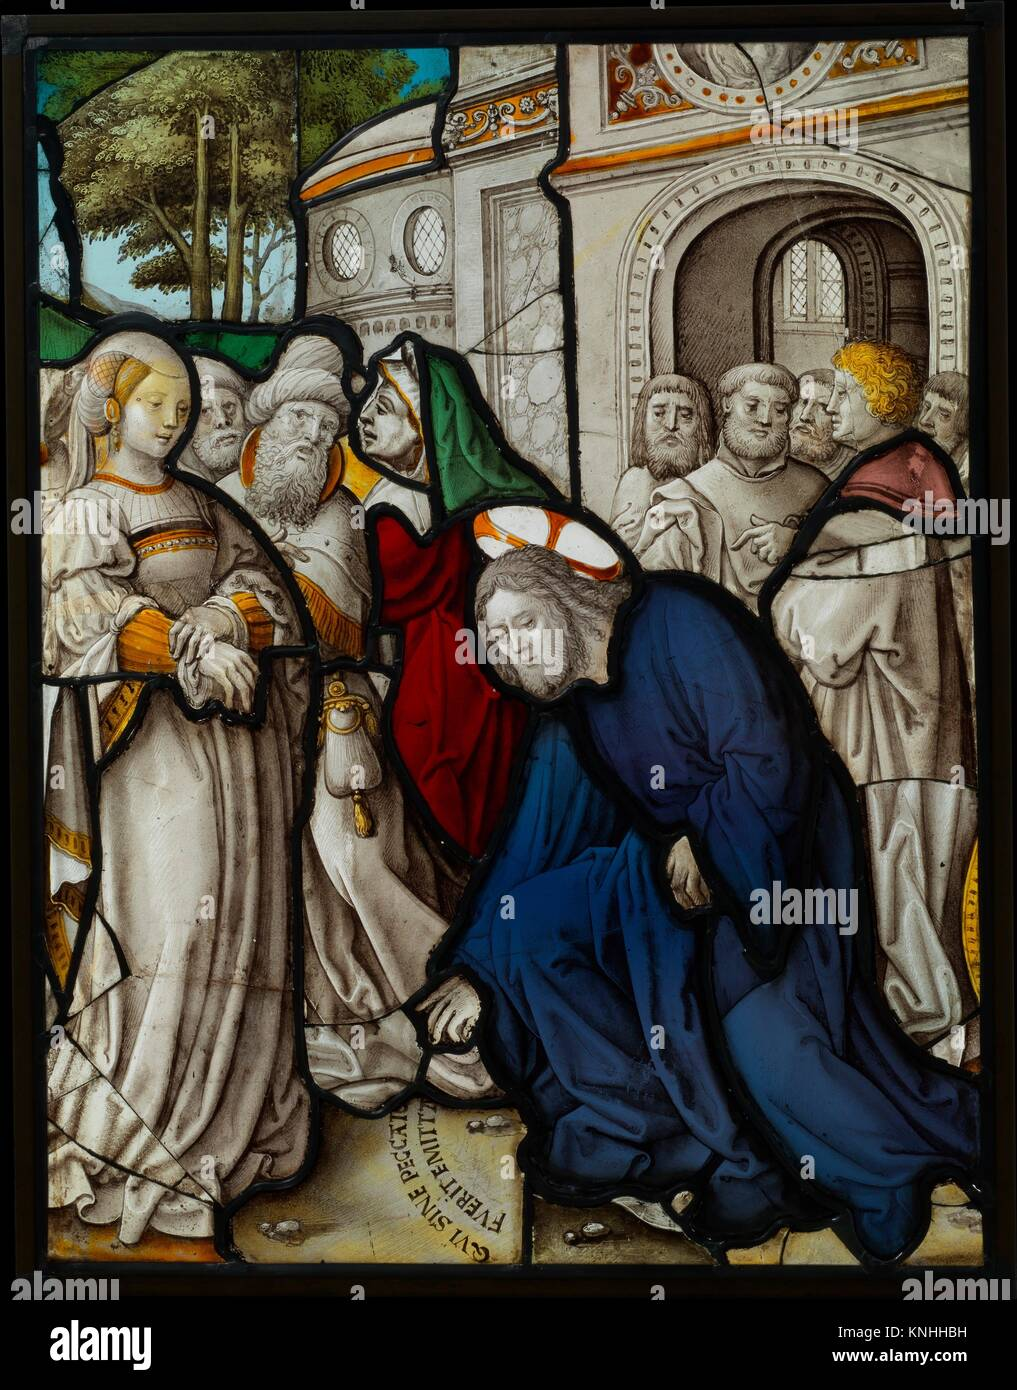 Christ and the Woman Taken in Adultery (one of a set of 12 scenes from The Life of Christ). Maker: Jan Rombouts - Stock Image